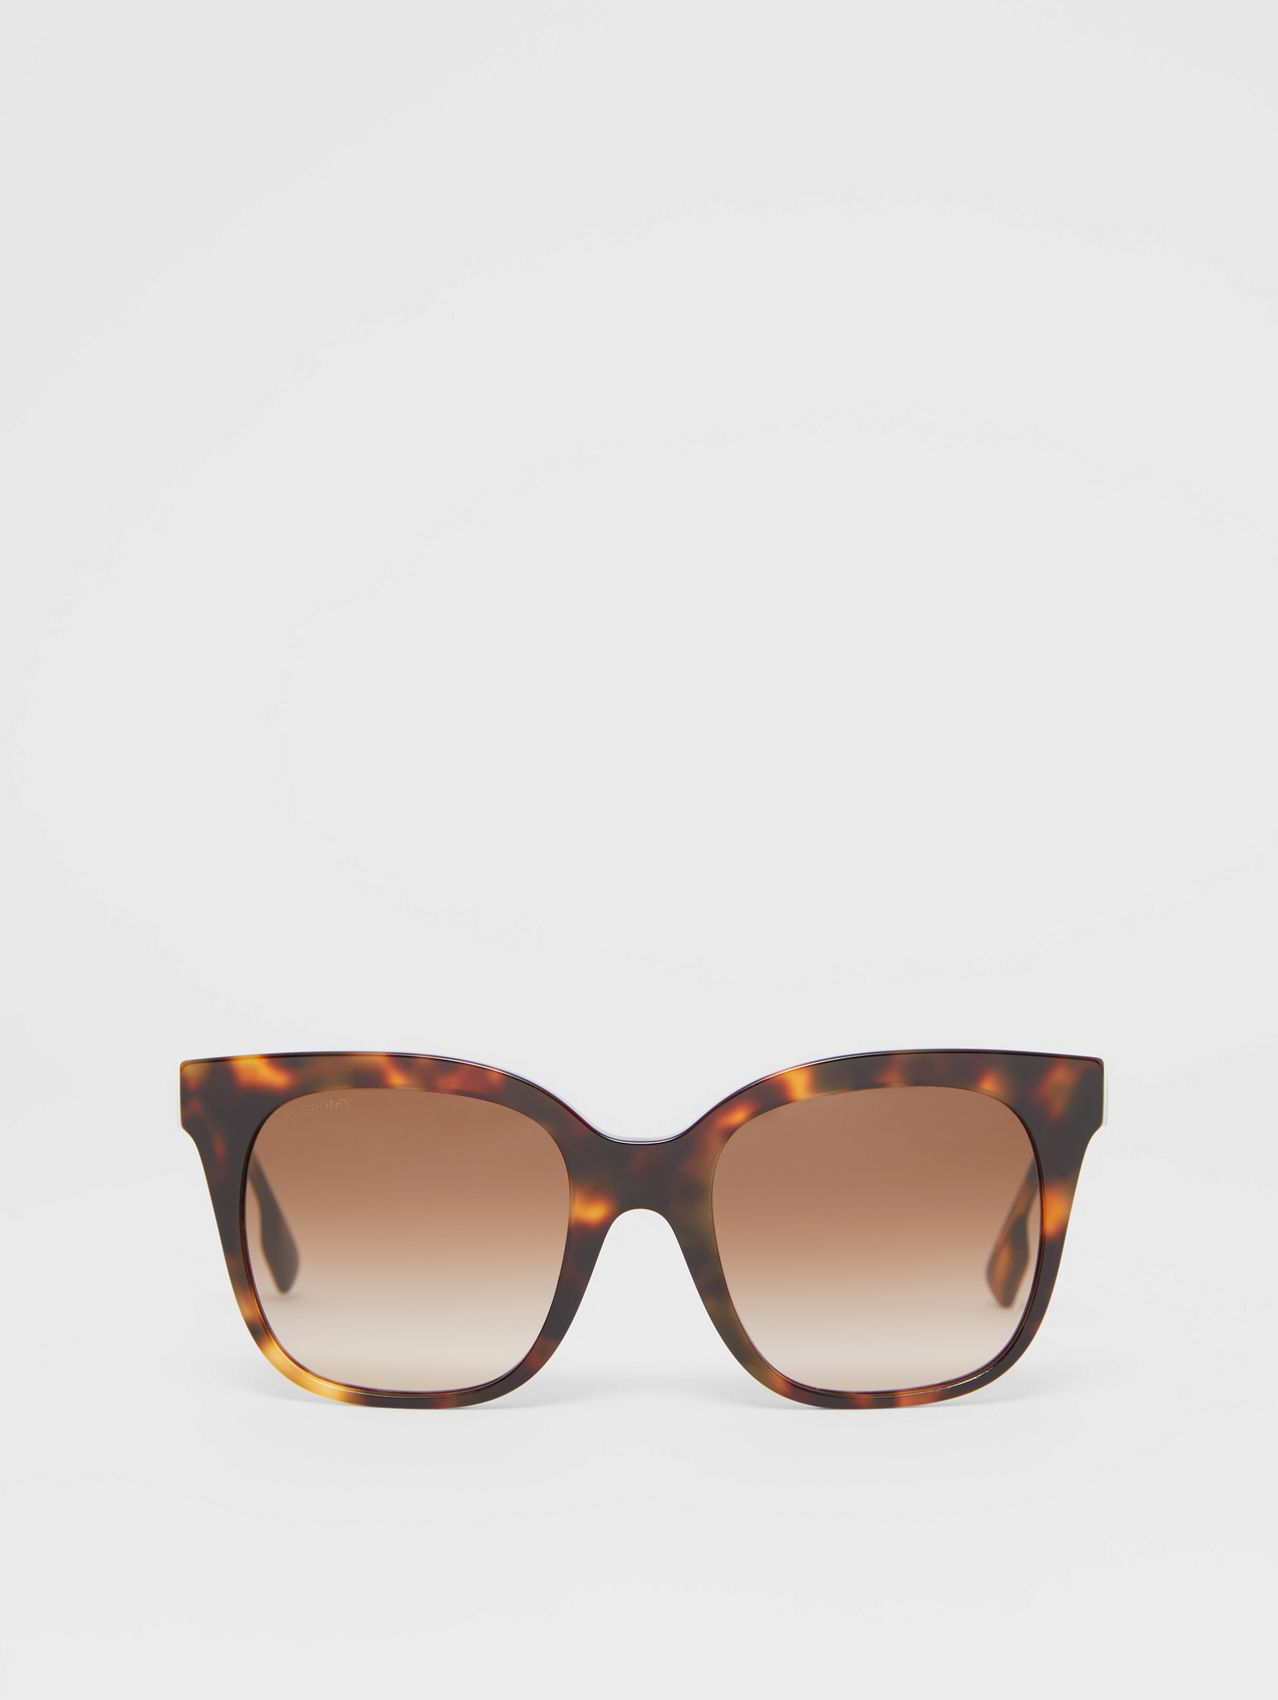 Butterfly Frame Sunglasses in Dark Amber Tortoiseshell